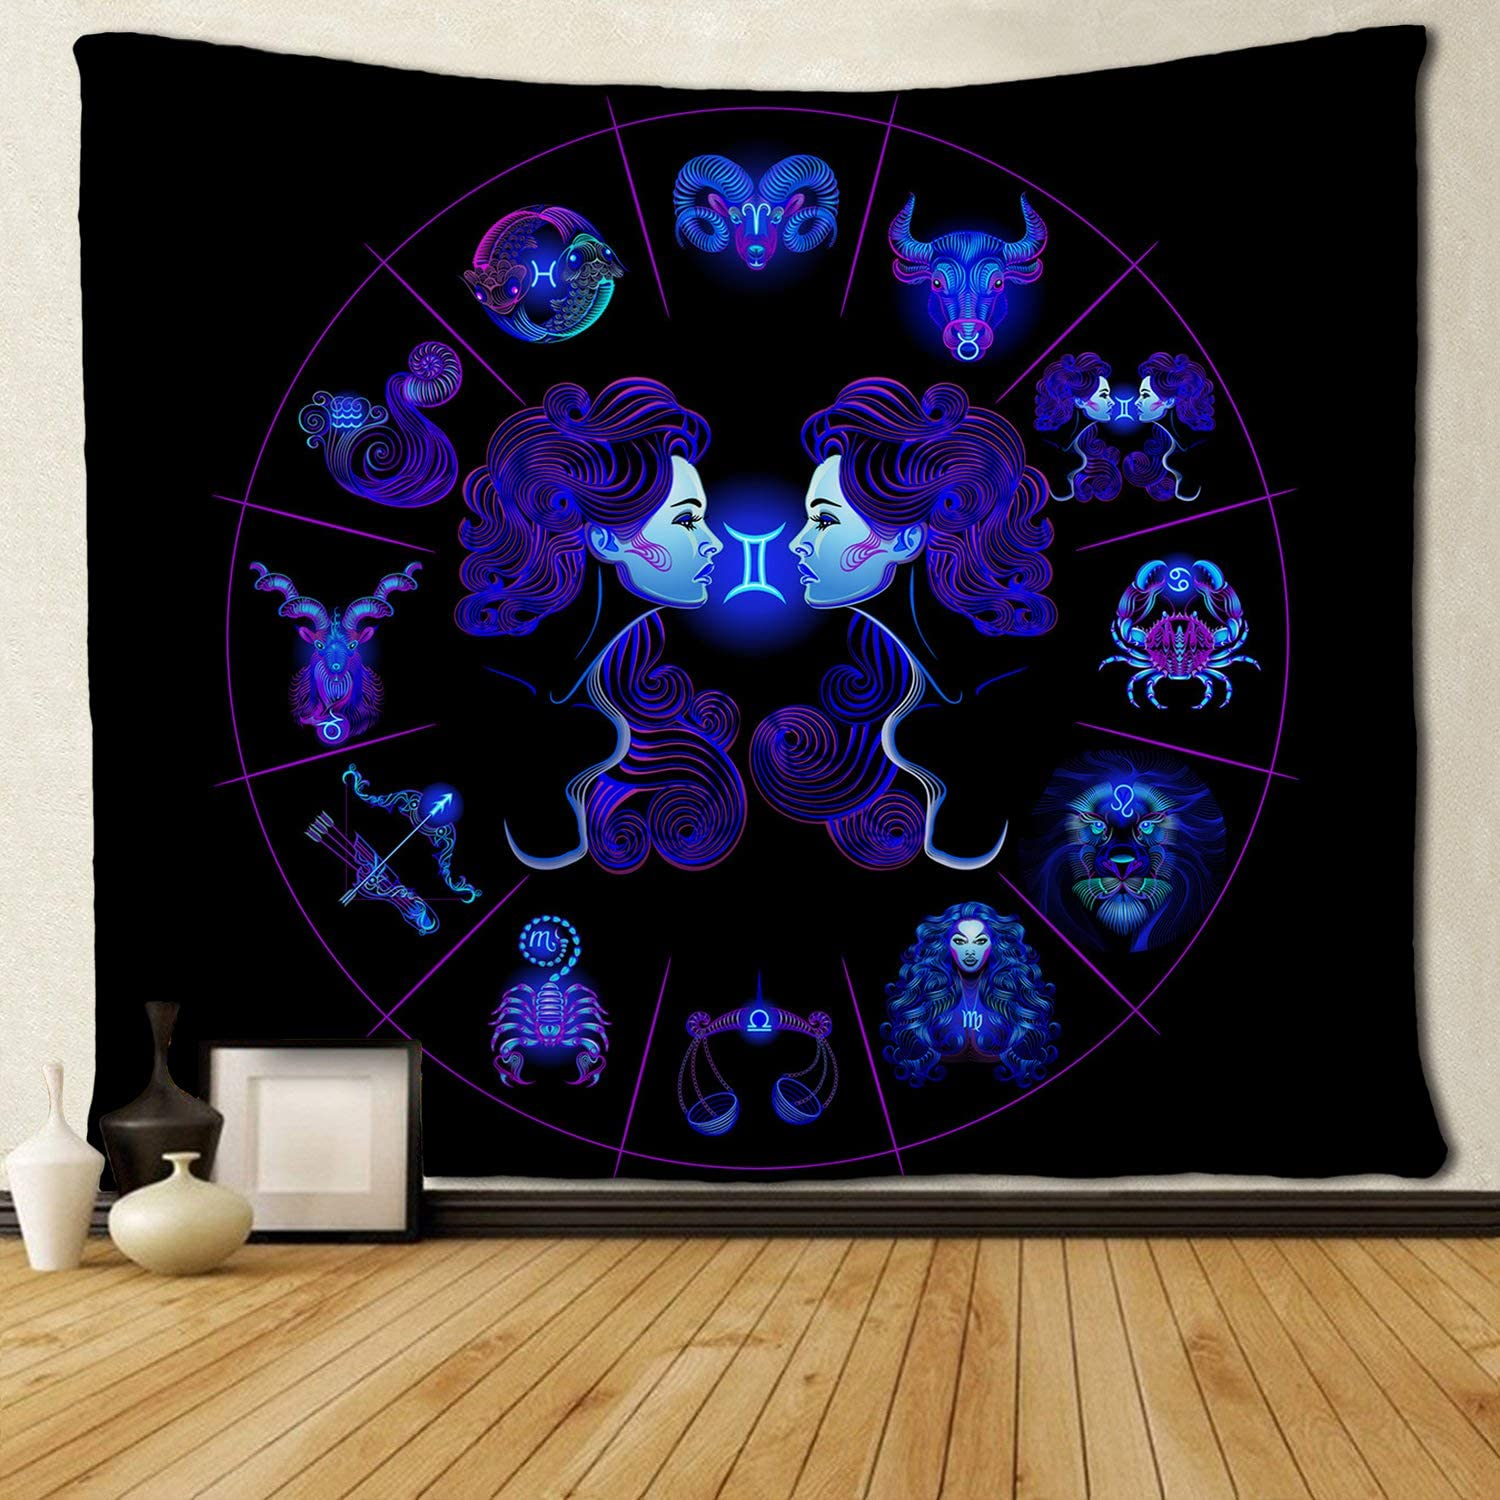 SARA NELL Tapestry Gemini Tapestries Hippie Art Wall Hanging Throw Tablecloth 50X60 Inches for Bedroom Living Room Dorm Room